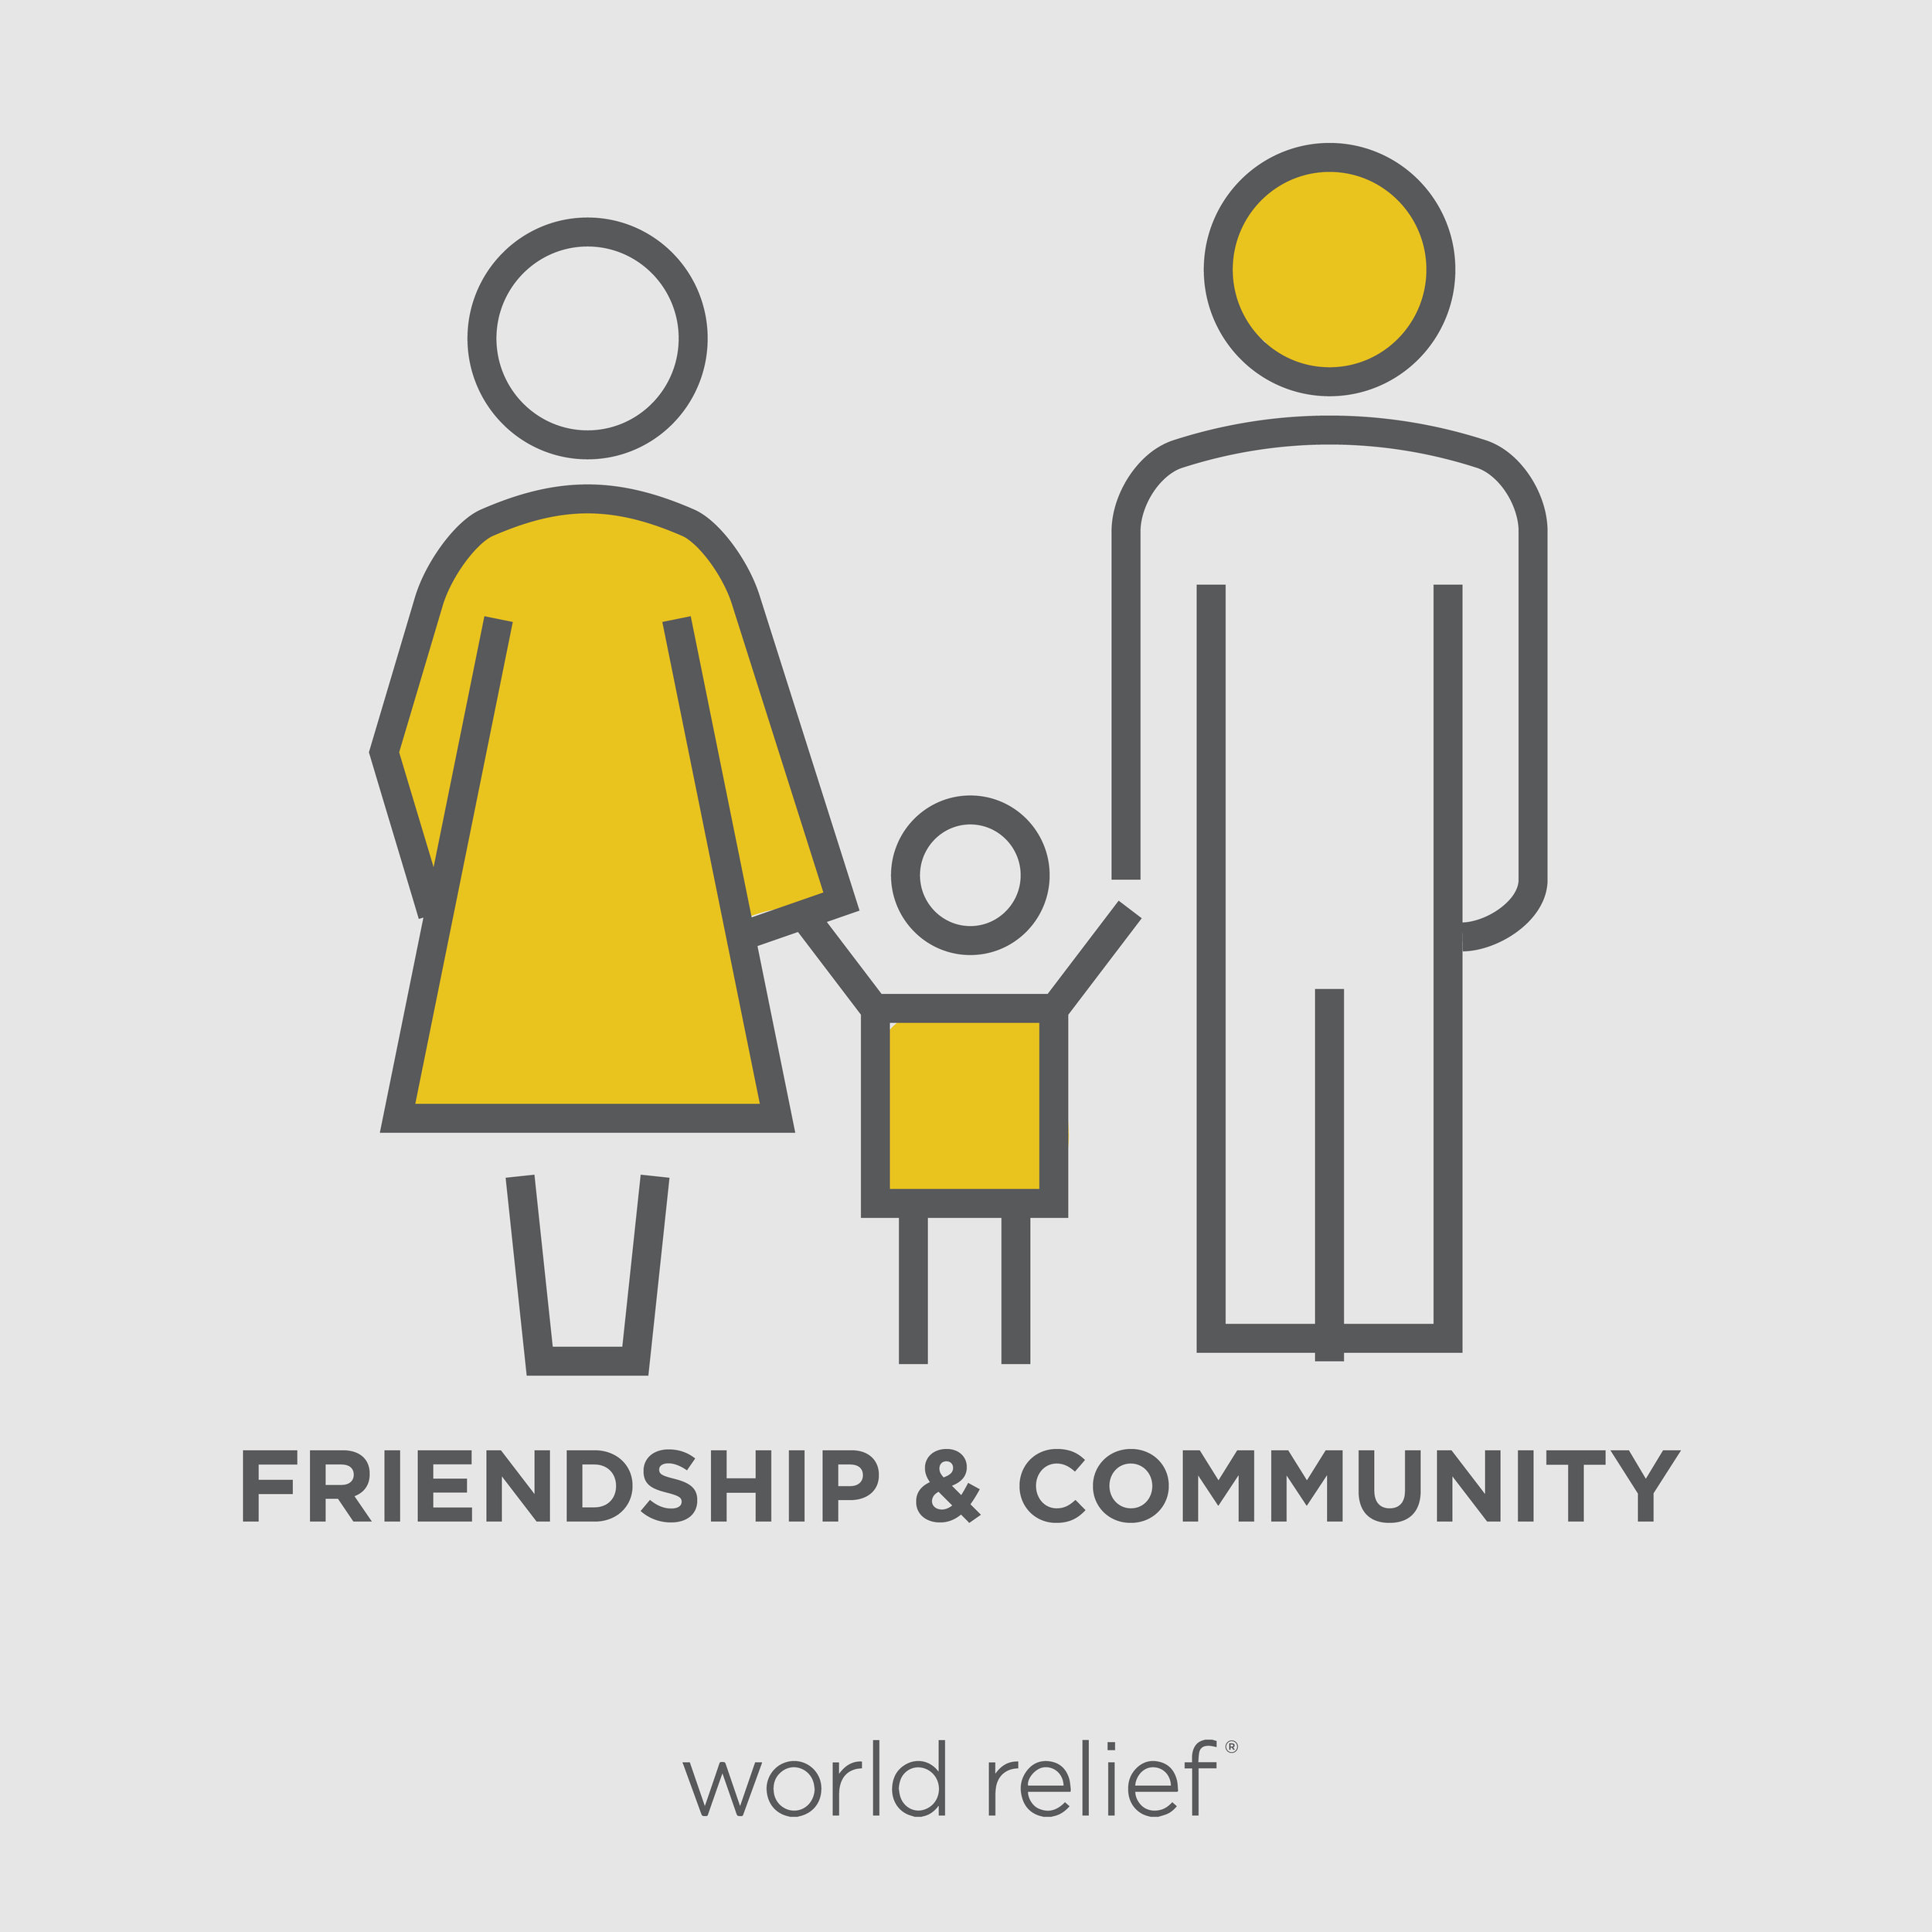 You helped us partner with local churches, families and communities to create long-term support systems for newly arrived refugees and immigrants.